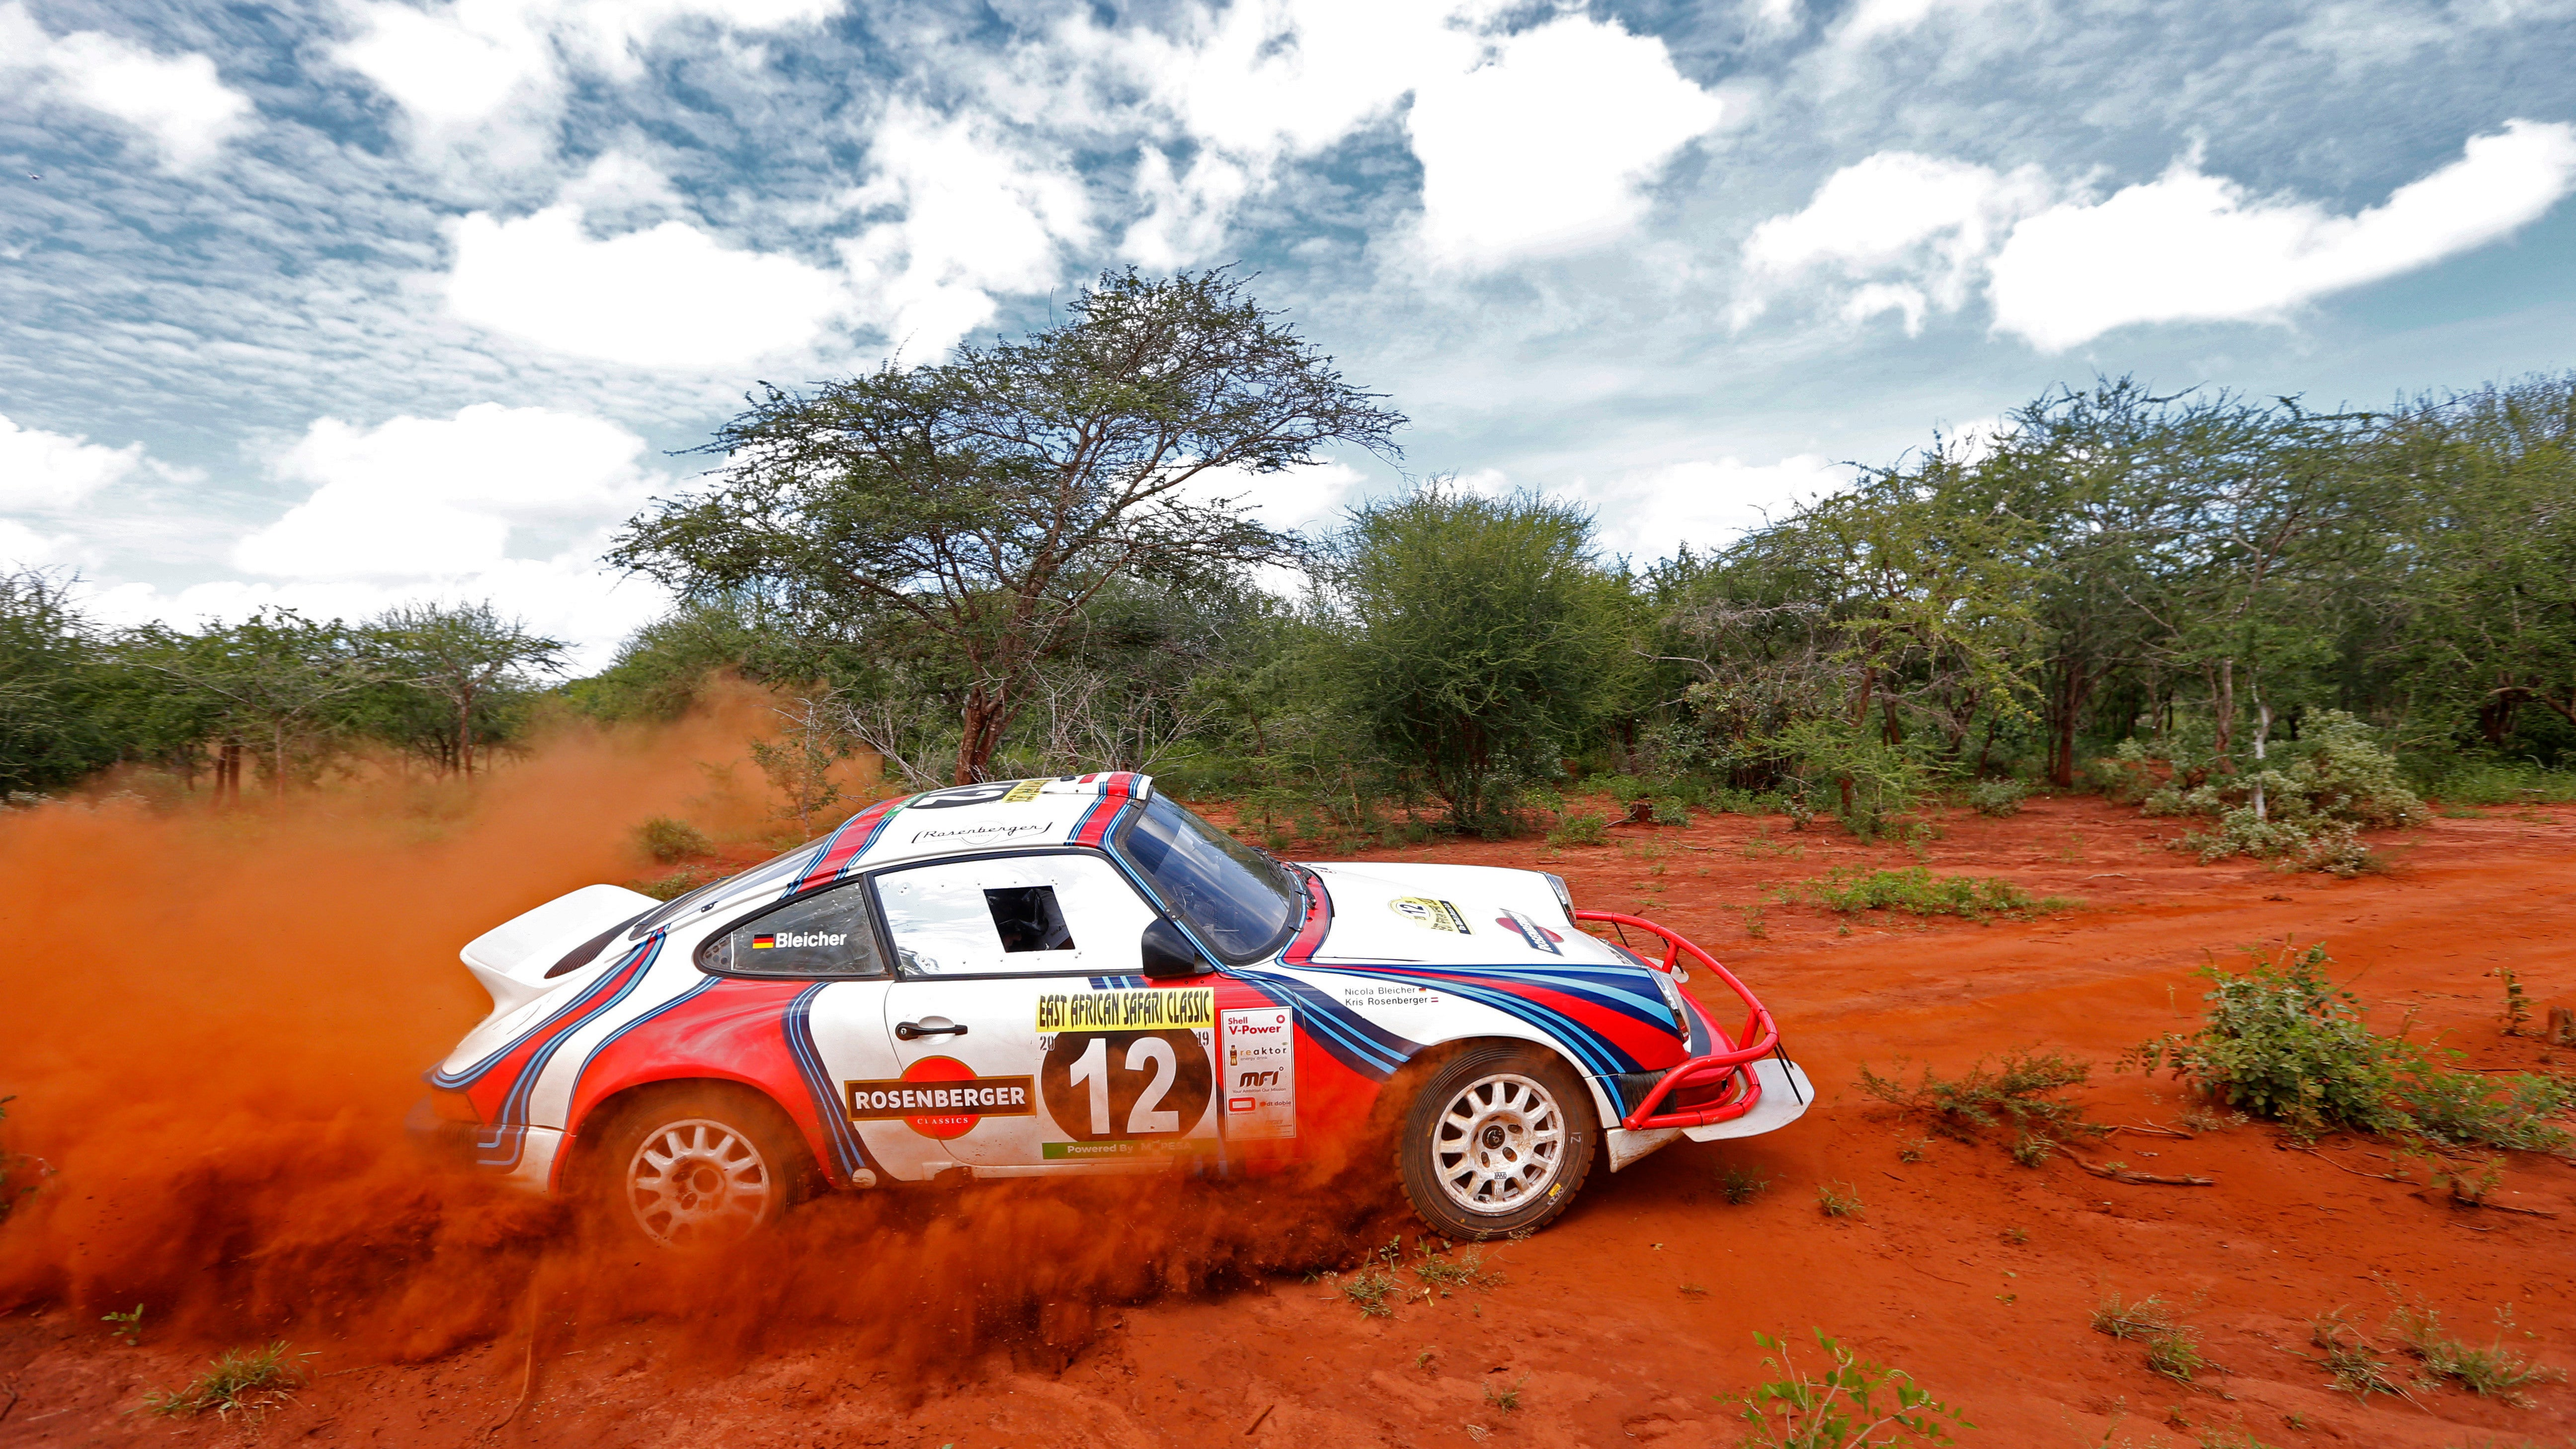 The East African Safari Classic Rally Looks Fun As Hell